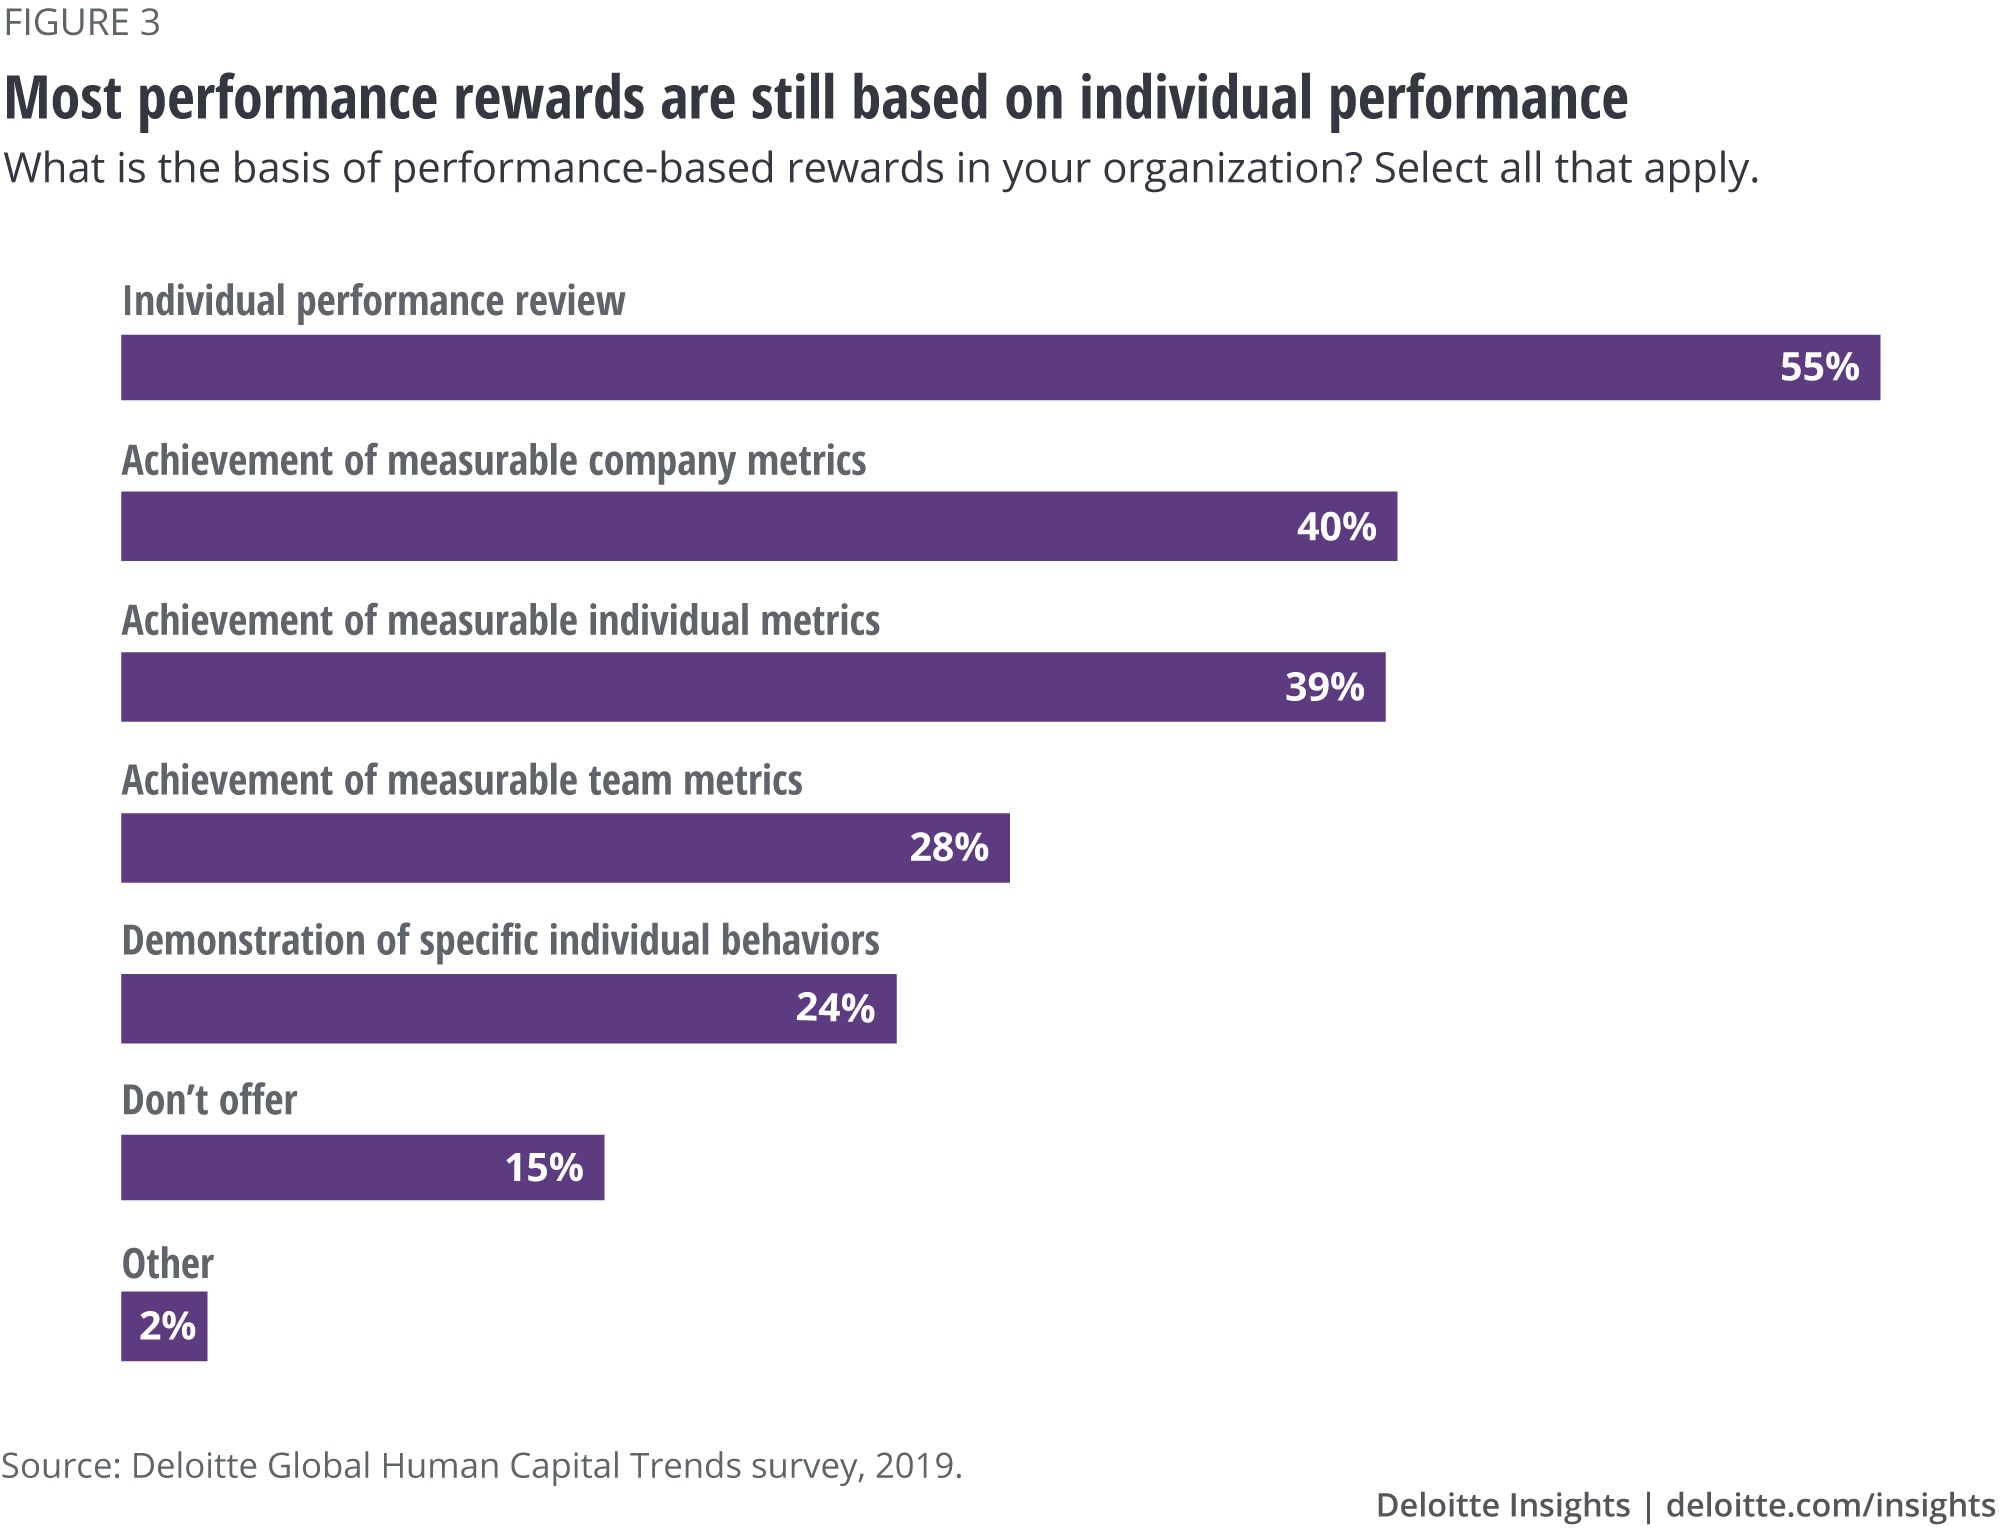 Most performance rewards are still based on individual performance